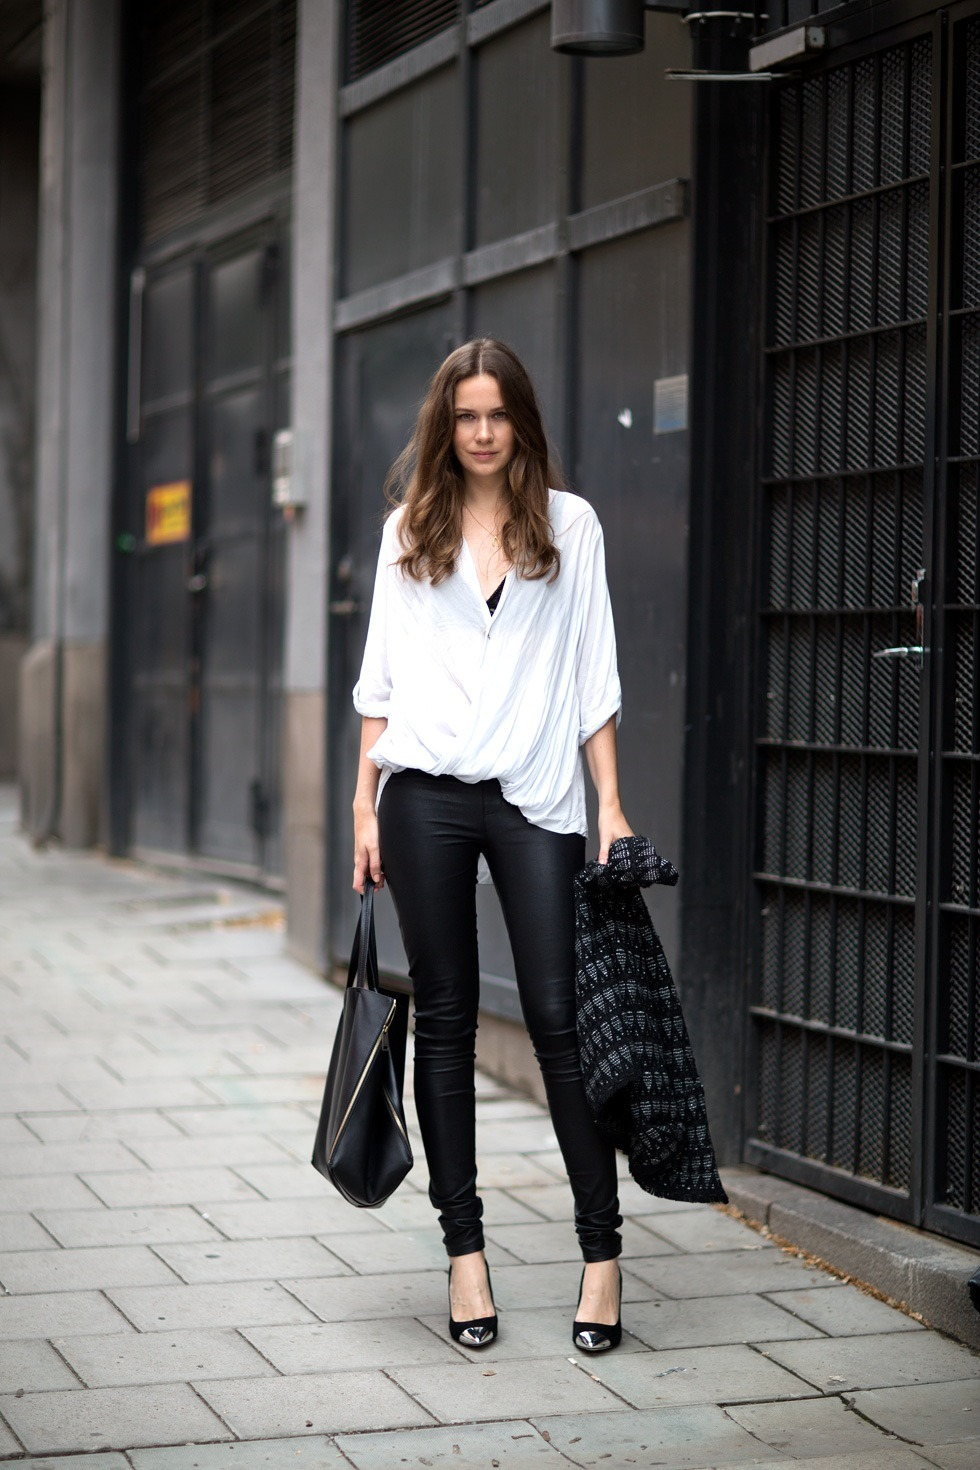 the-mode-de-vie:  Caroline (Via Carolines Mode) Absolutely love this look by the amazing owner and founder of one of my favourite Street Style/Fashion blogs. She wears pants and top from Helmut Lang, jacket from IRO, bag from Celine and heels from Topshop. I love the simplicity of this look but how it is so on trend and edgy all at the same time! The leather pants add a tough element almost an motorcycle ambiance to the look where is the casual relaxed fit of the style adds a feminine touch and with the hint of a black lace bra showing it complements the top! The gorgeous Celine bag is a statement and the focal point of this ensemble, a jacket from IRO enhances the look and also puts a hint of elegance in this entire look. A pair of heels from Topshop with a metallic point, tie in the jacket and silver detailing on the bag!  Perfection!